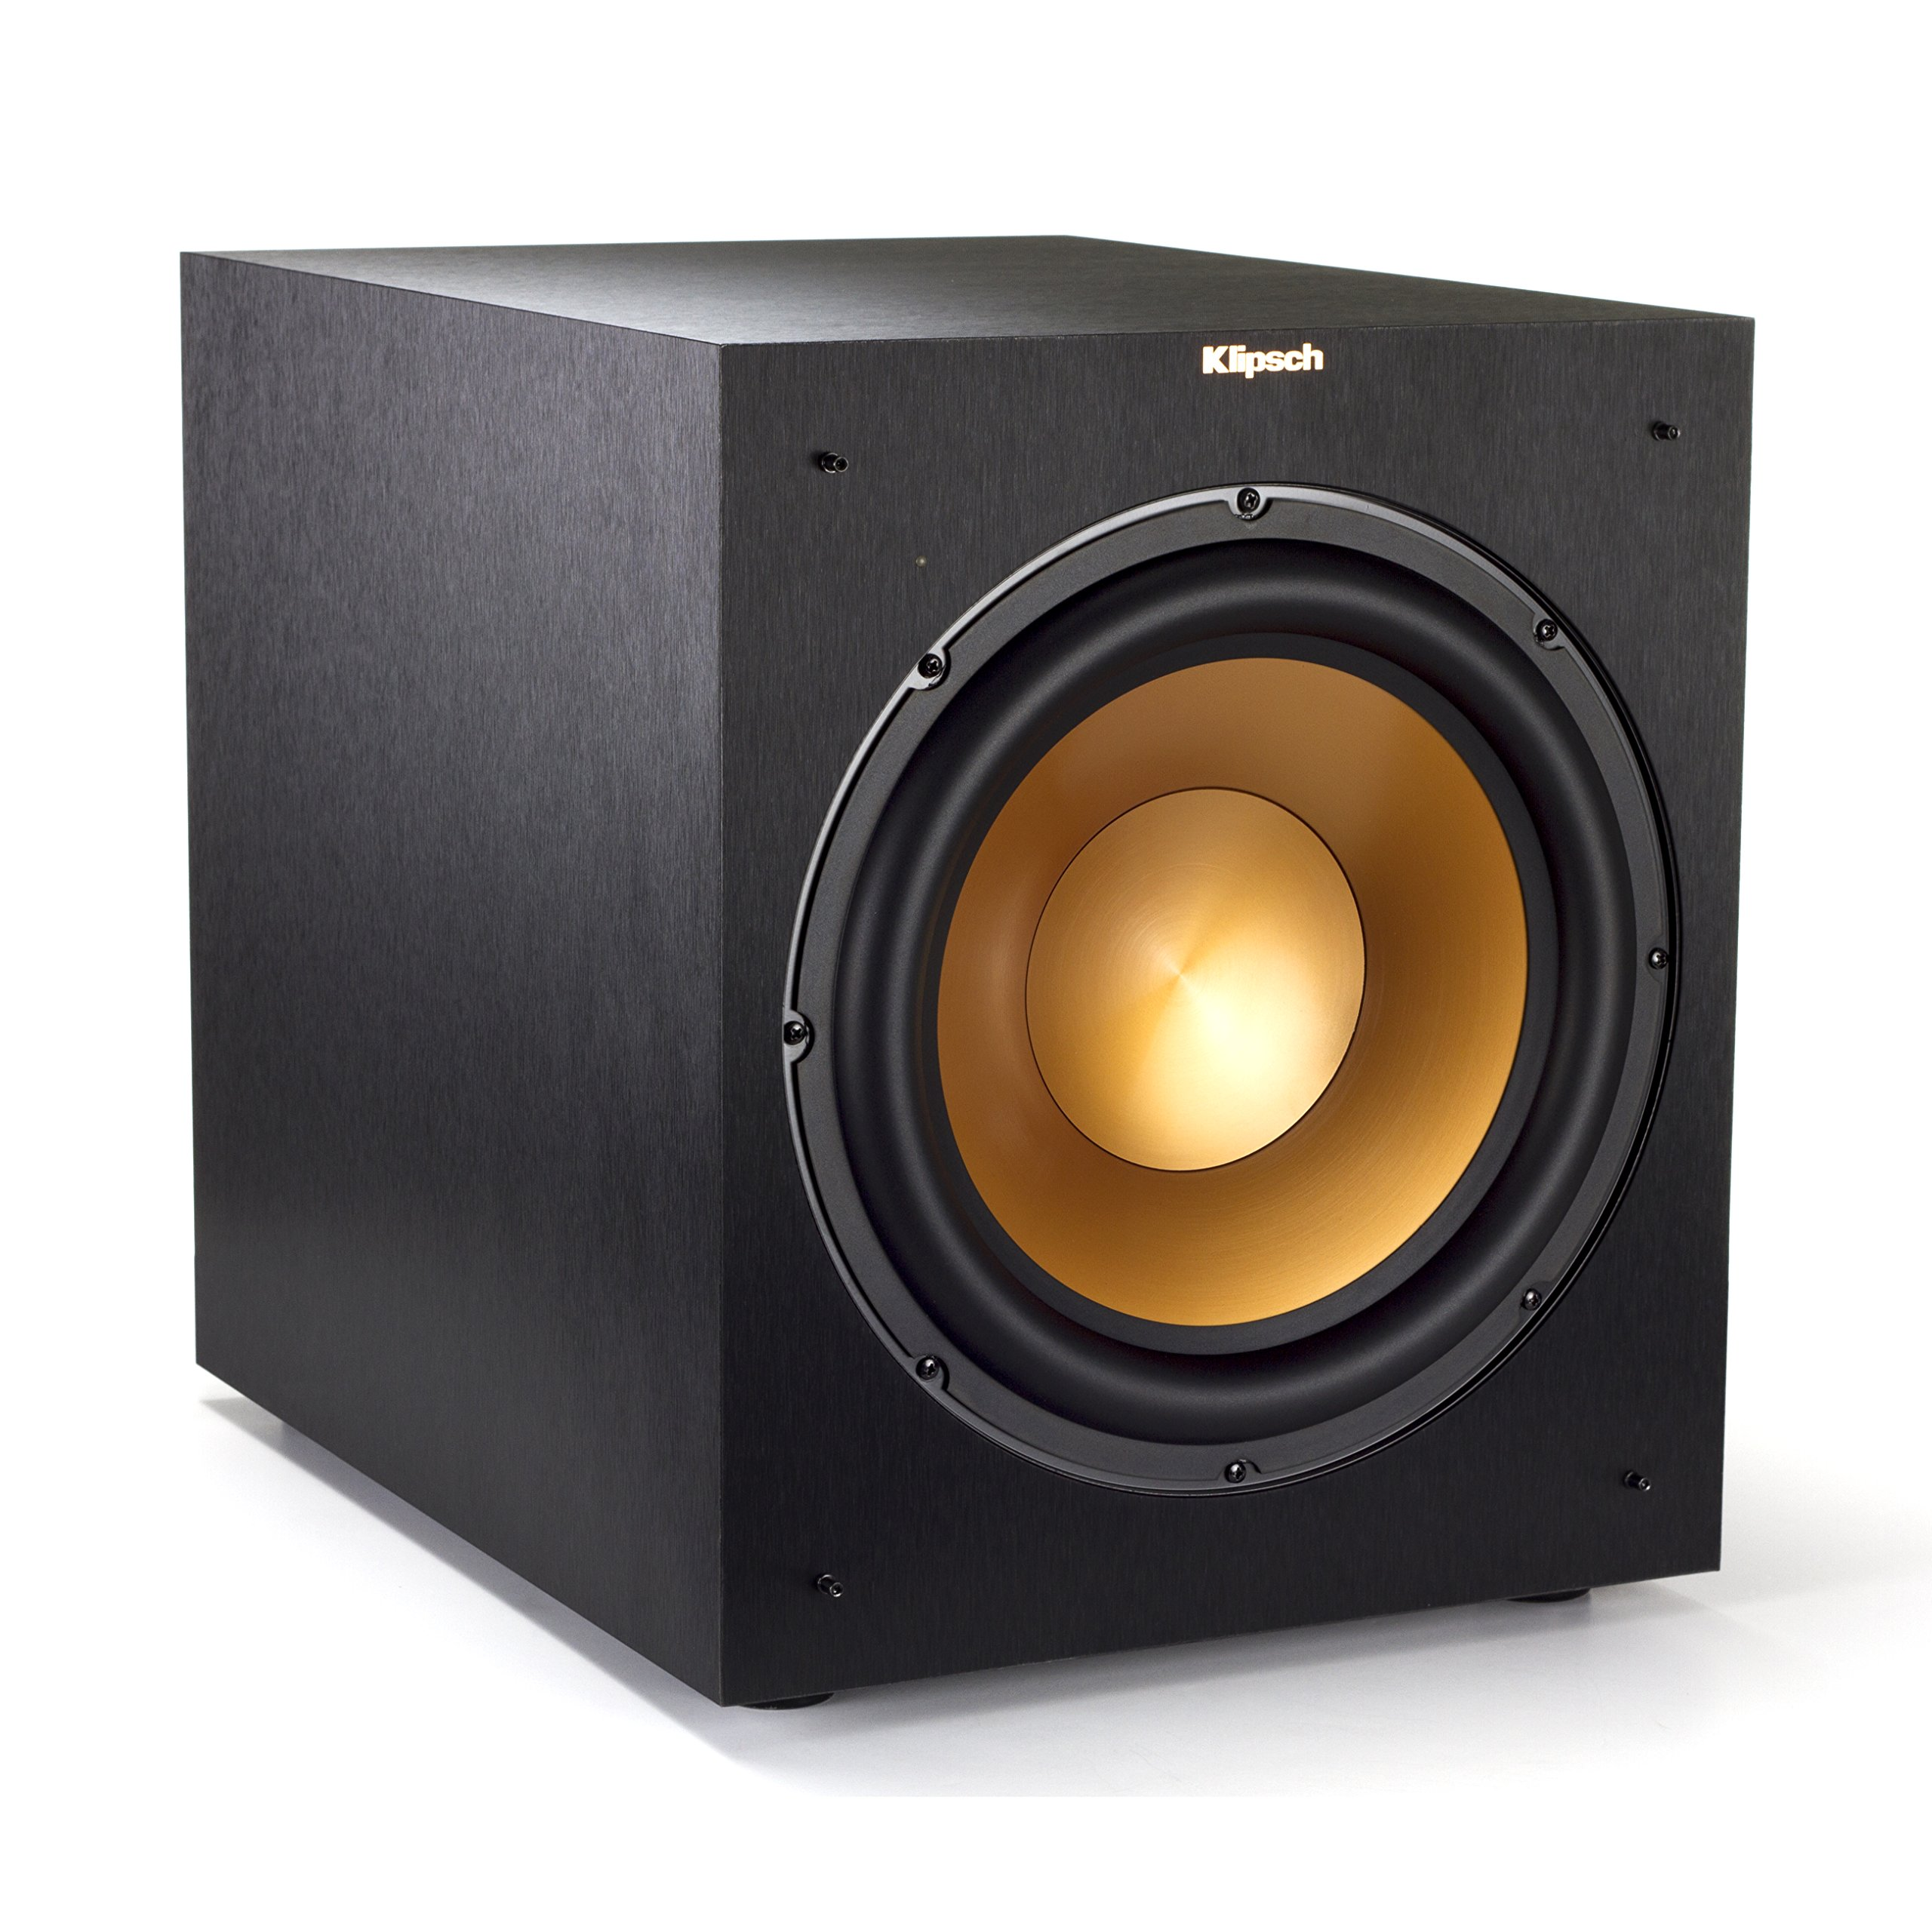 Klipsch 12'' 400 Watts Wireless Subwoofer Brushed Black Vinyl (R-12SWi) by Klipsch